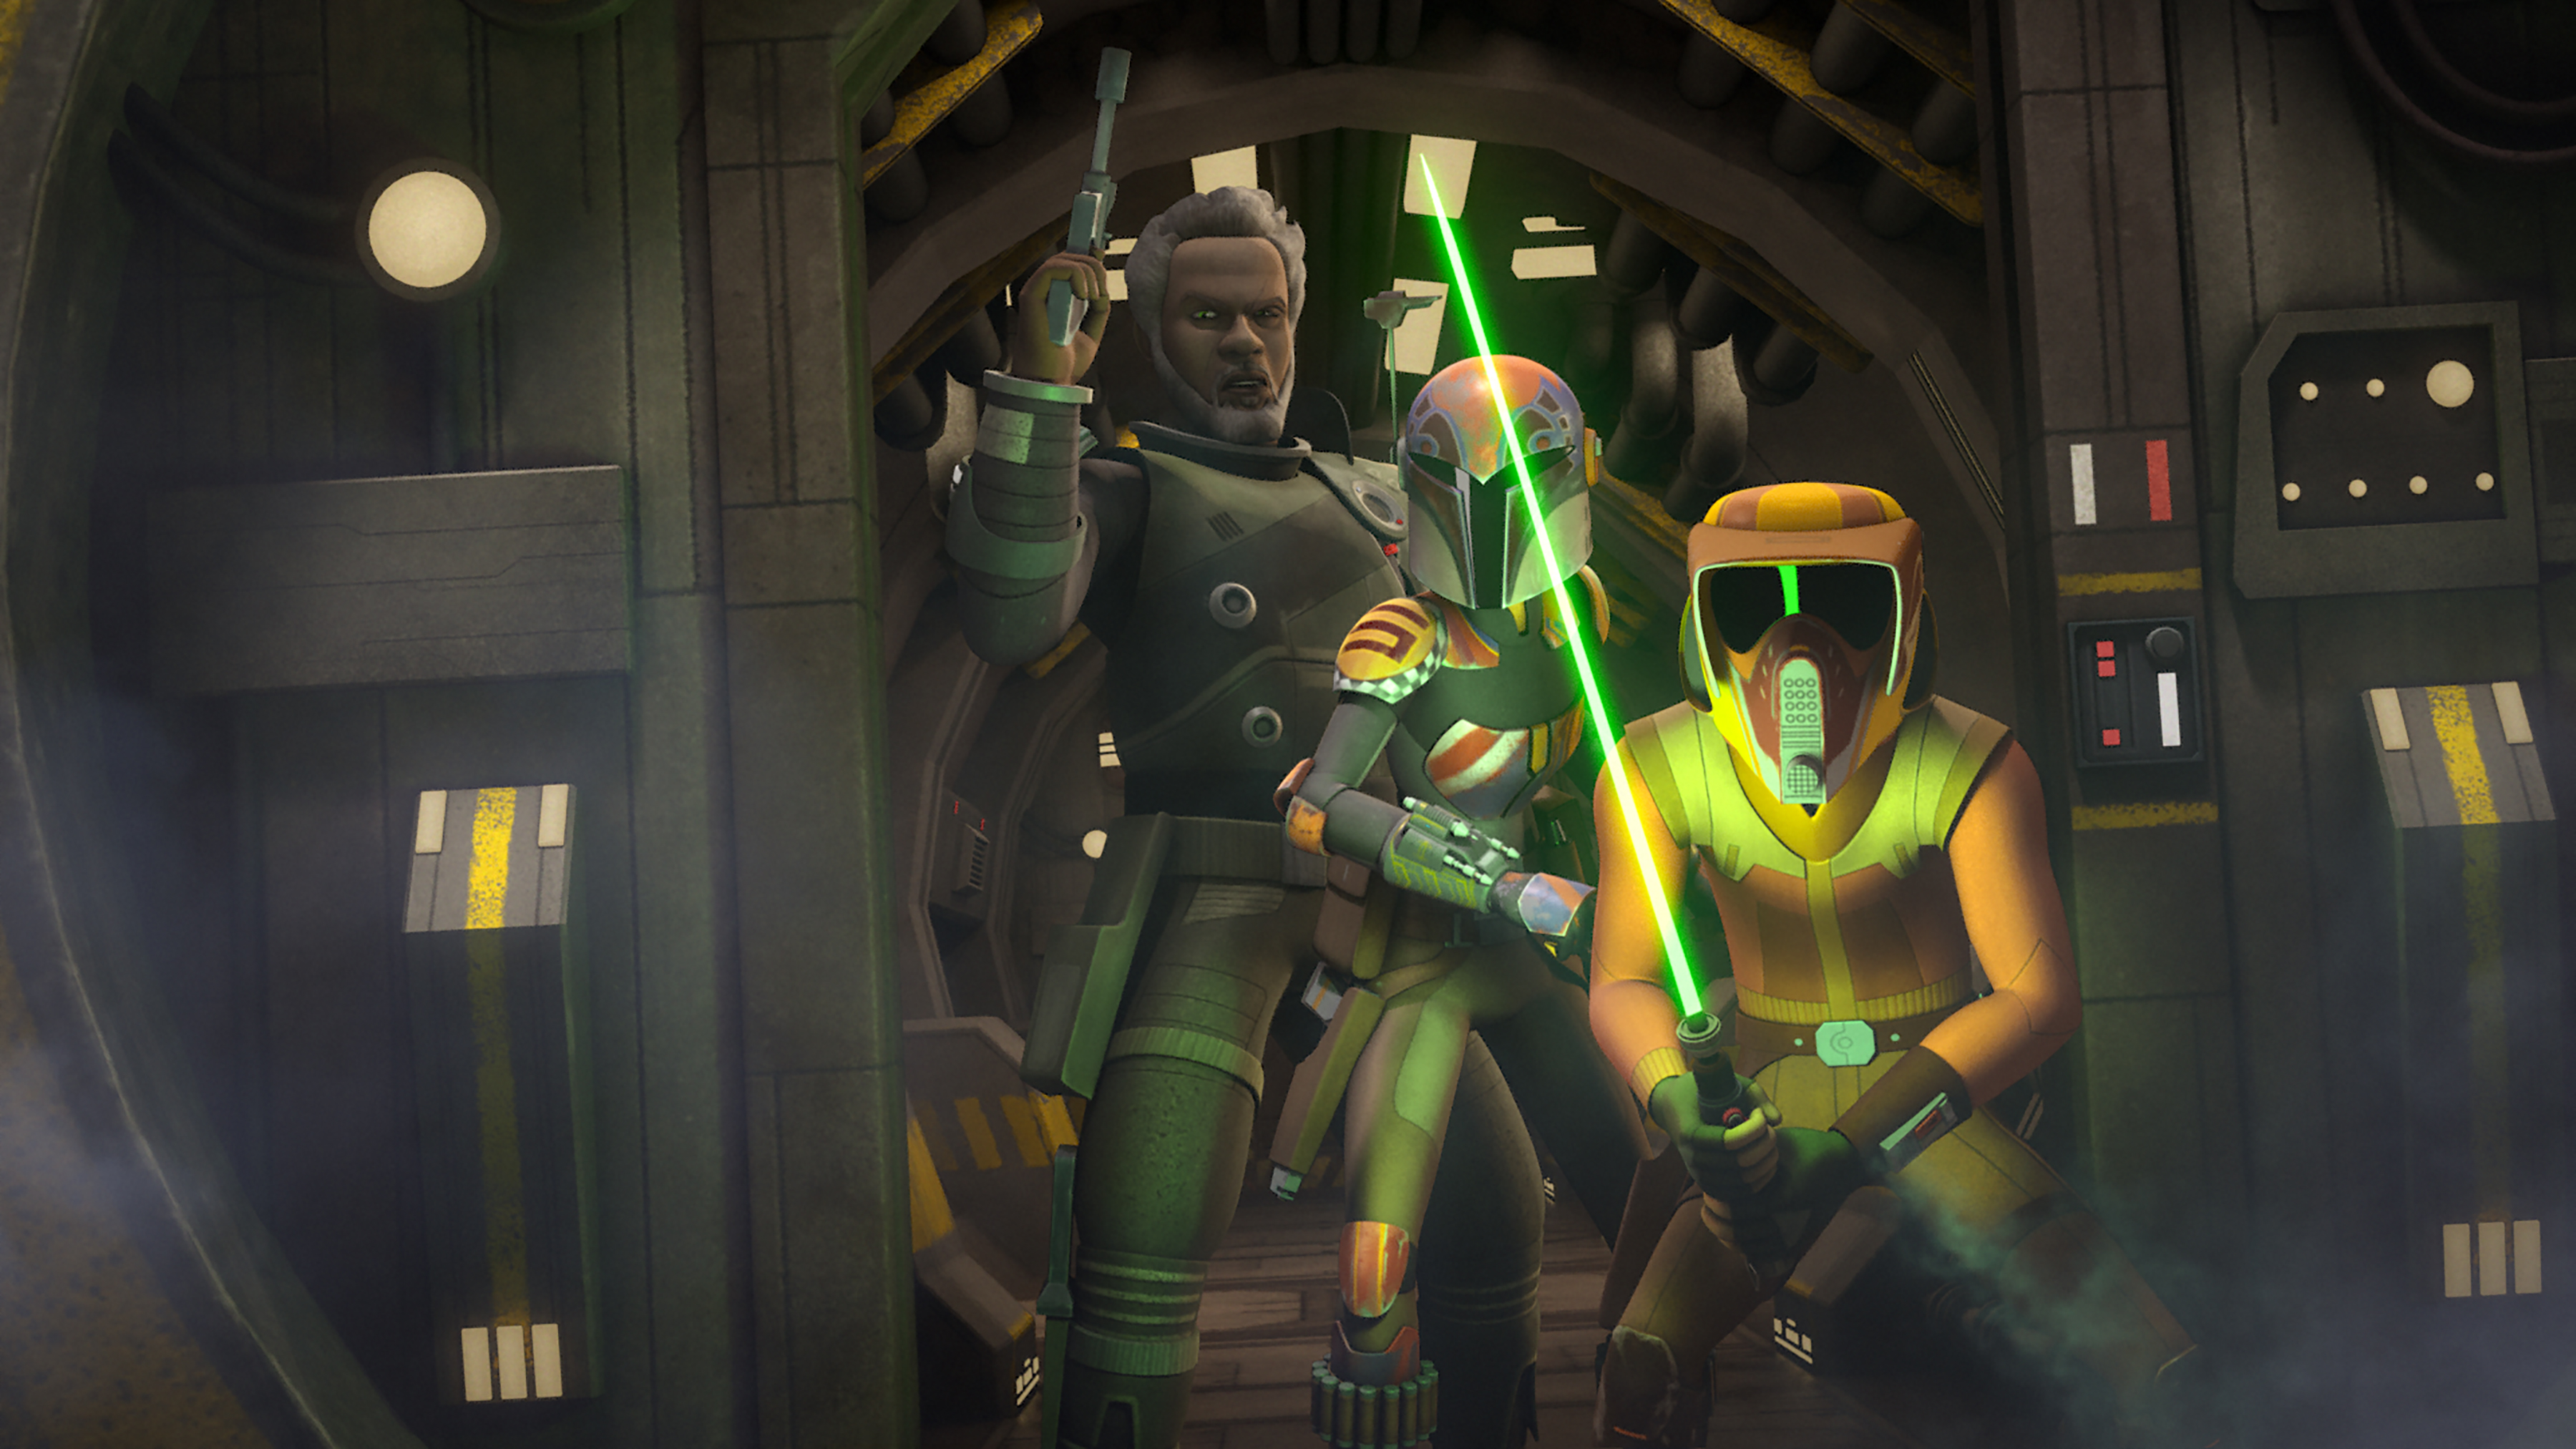 Saw Gerrera Returns For Two Part Star Wars Rebels Adventure